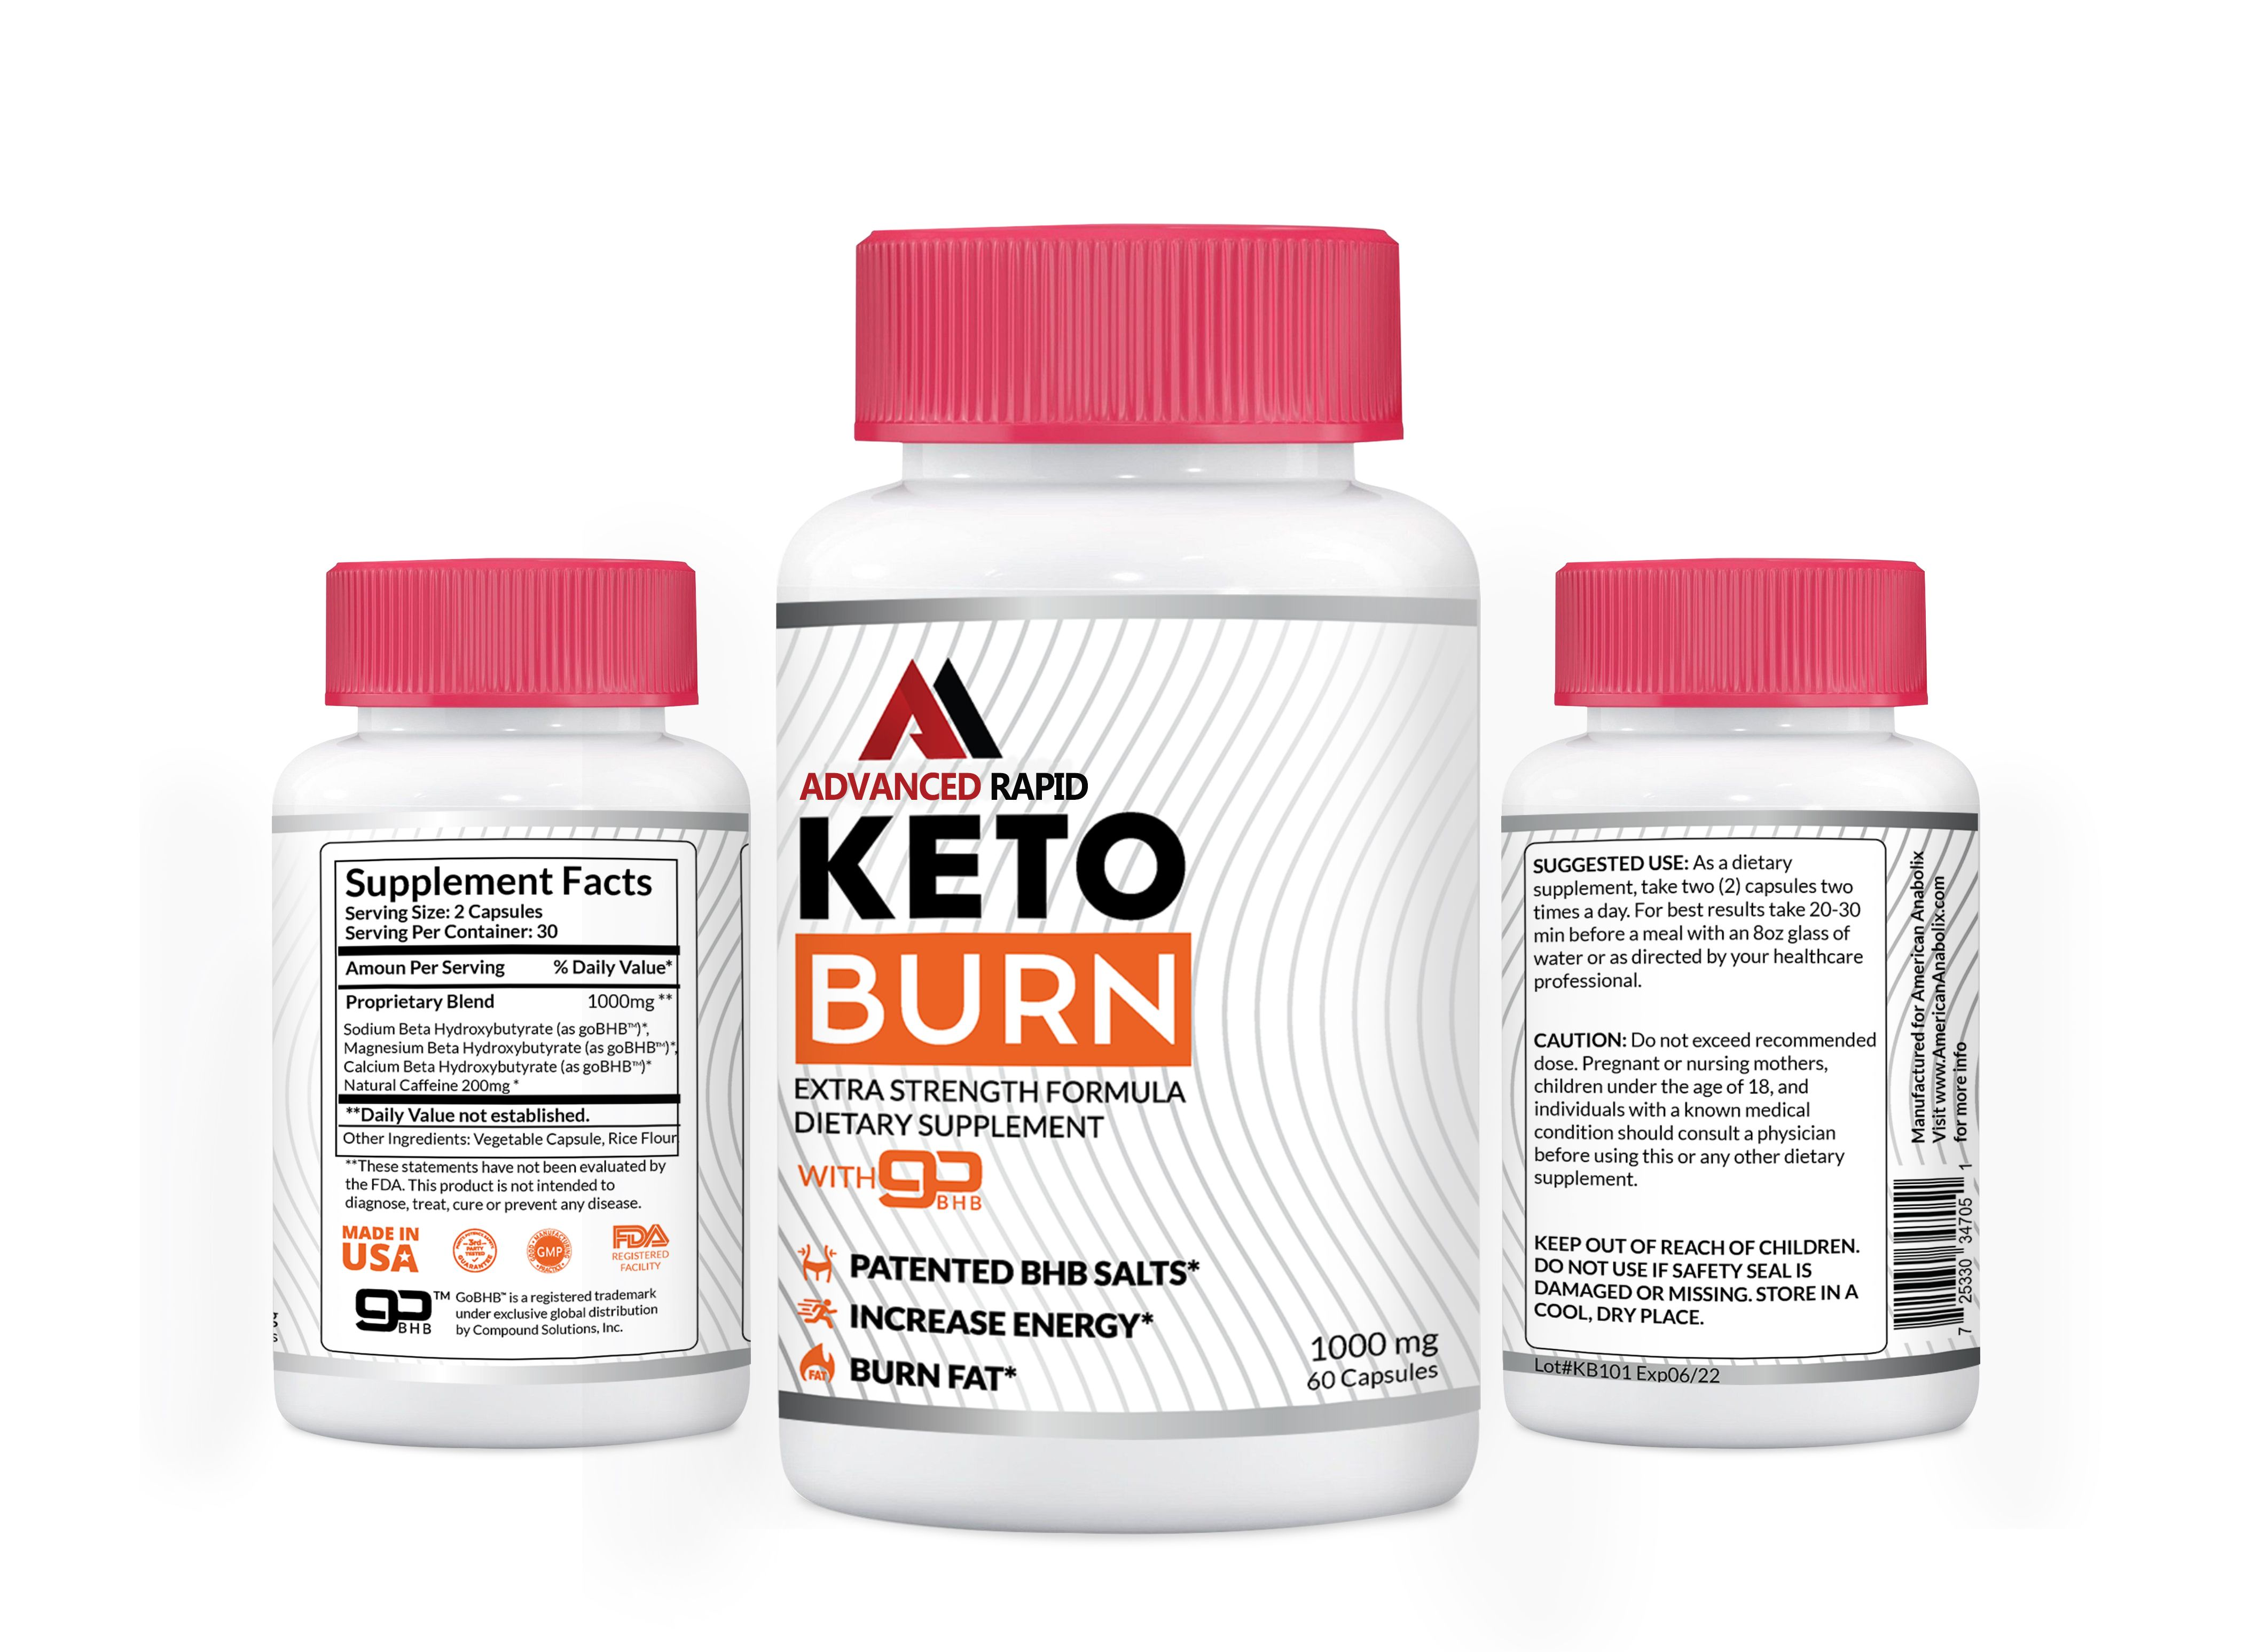 Advanced Rapid Keto Burn Does it contradict what nutrients ...